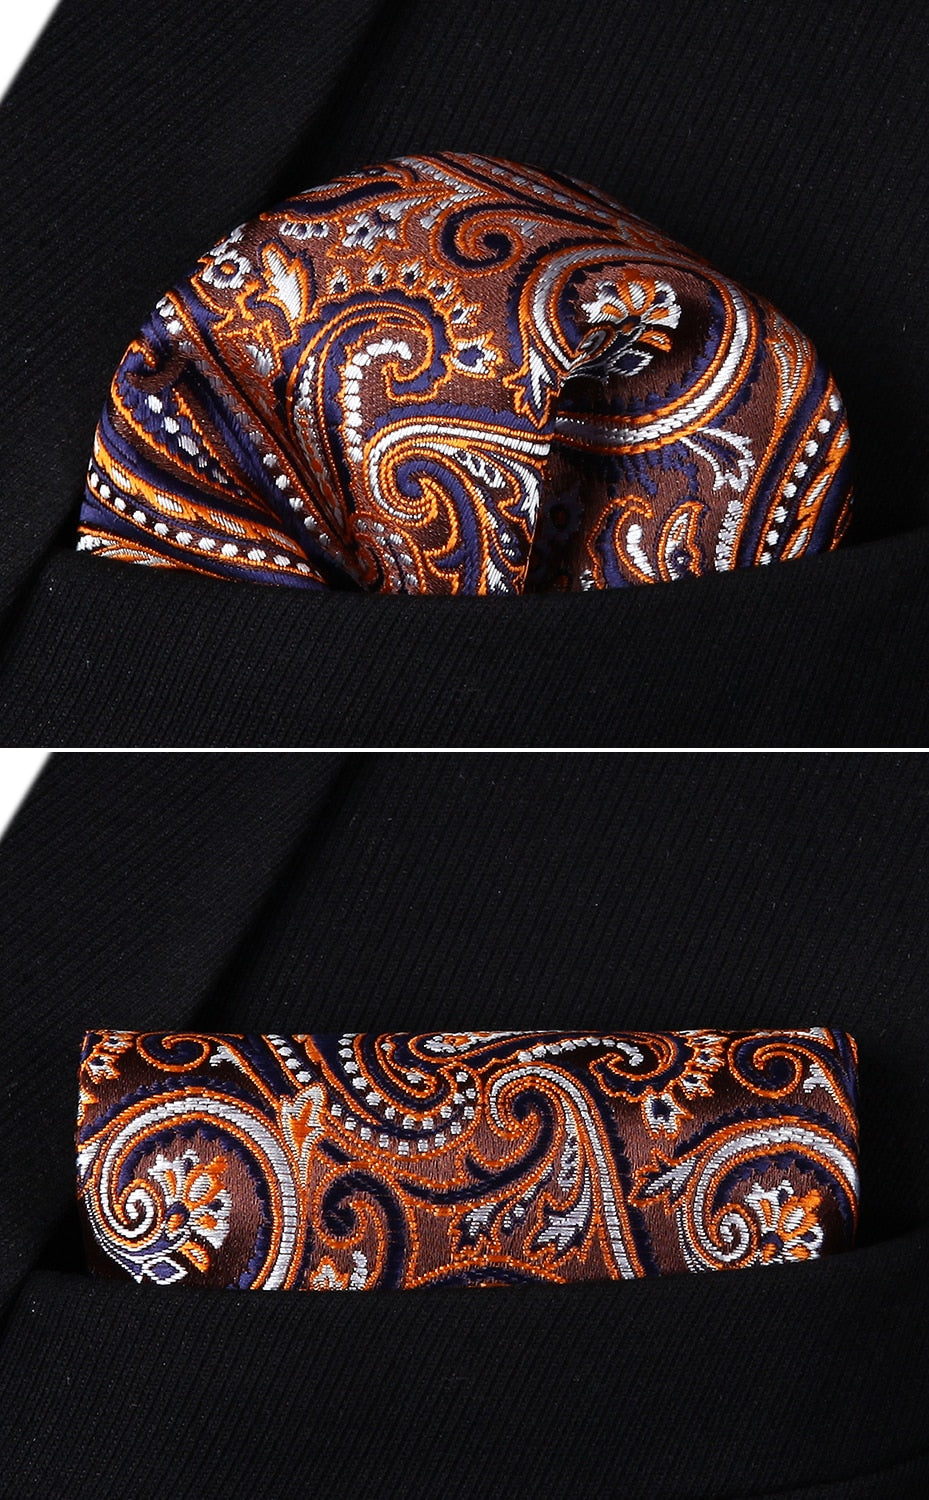 f9d643a42dd2 Brown and Blue Paisley Tie and Pocket Square | Beautiful ties at ...